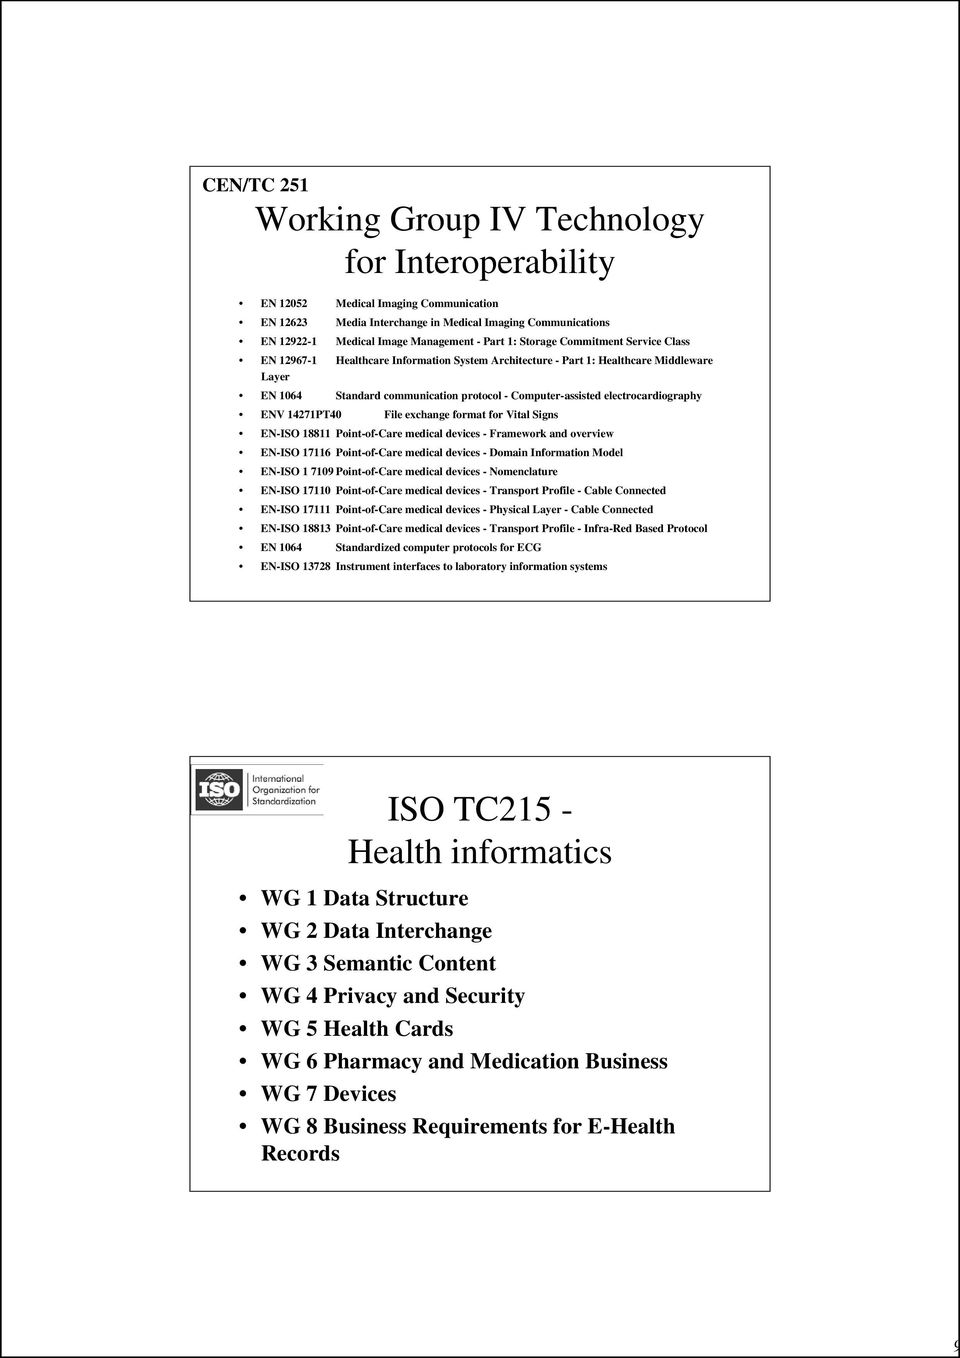 electrocardiography ENV 14271PT40 File exchange format for Vital Signs EN-ISO 18811 Point-of-Care medical devices - Framework and overview EN-ISO 17116 Point-of-Care medical devices - Domain